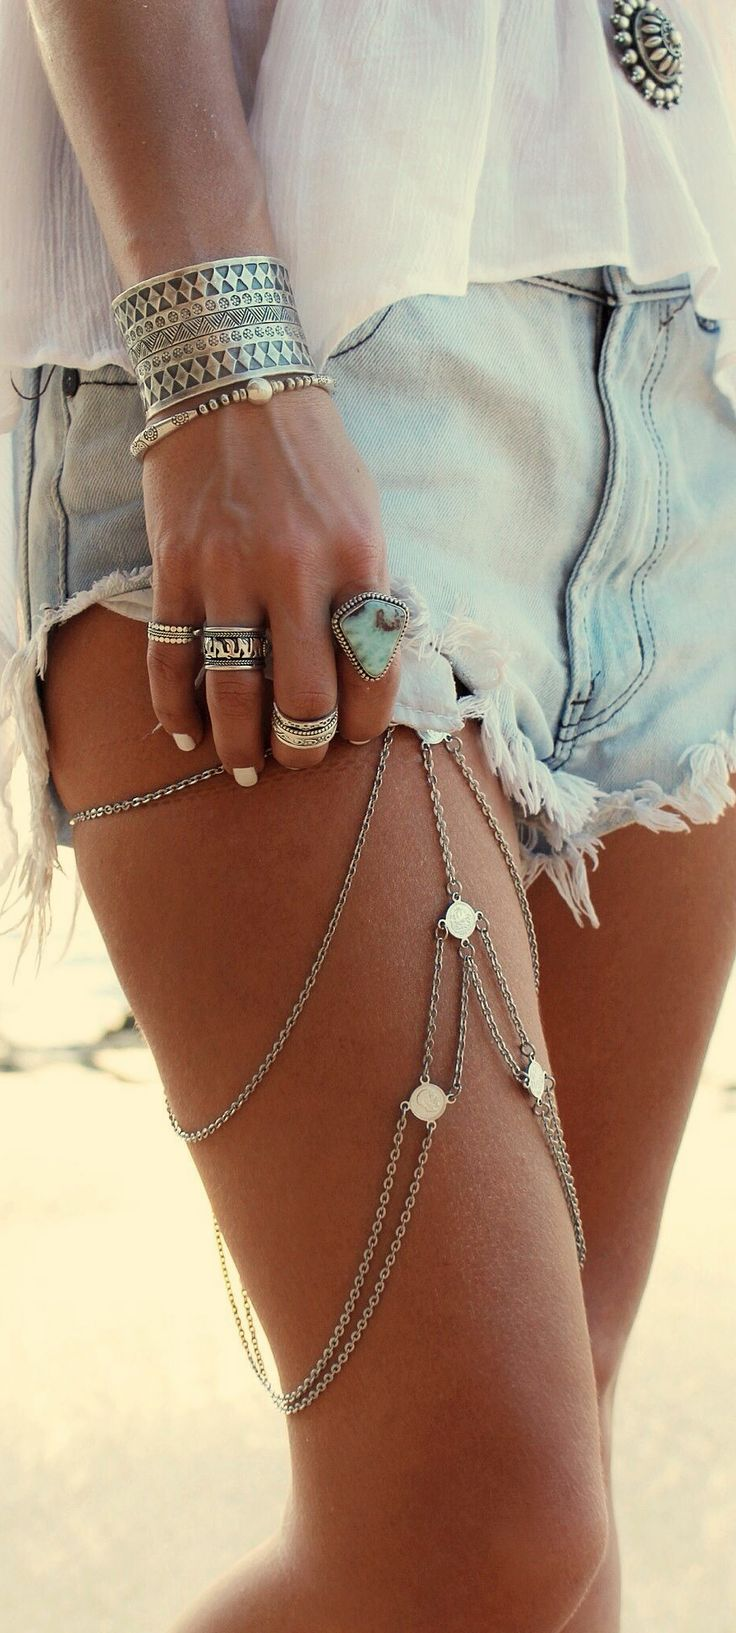 Body Bling perfect for #Coachella